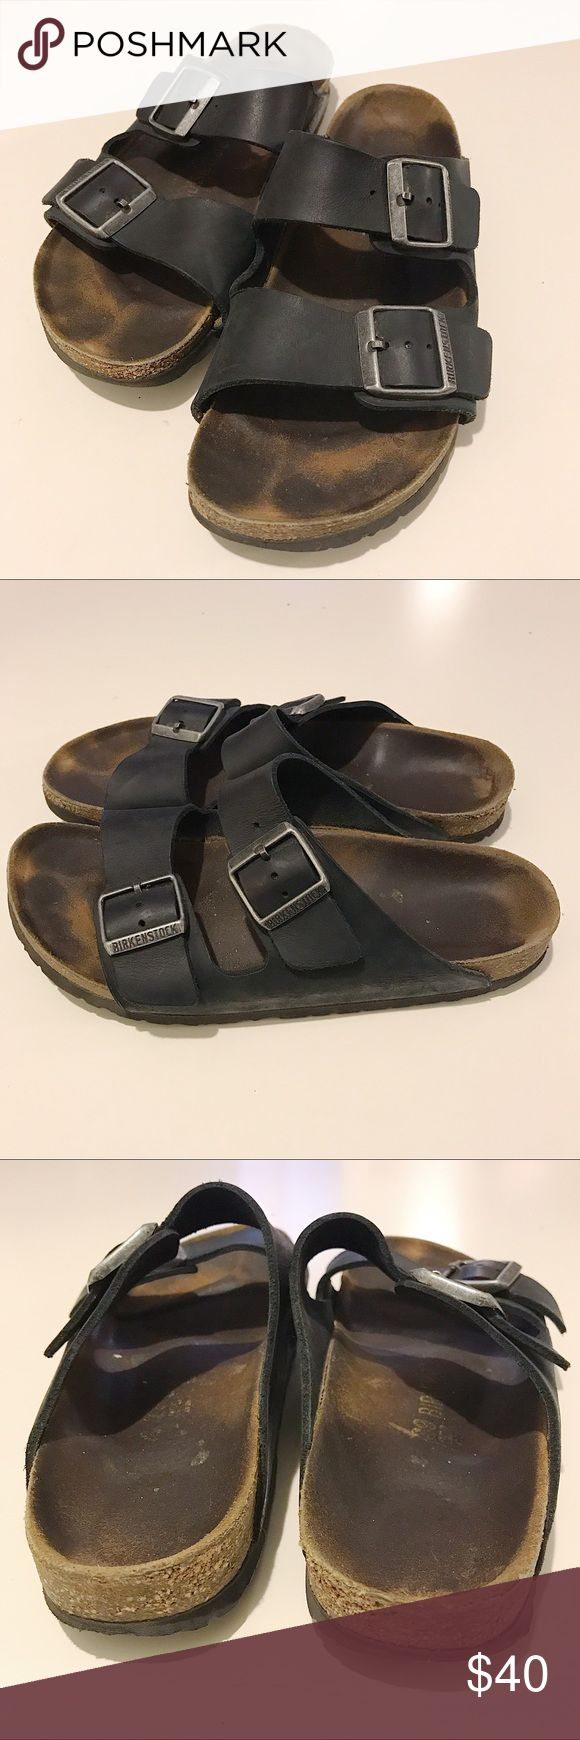 Birkenstock | Black Double Buckle Sandals, Size 9 Everyone's favorite and most comfortable sandals! And good news: sandals with socks are back in so you can wear these through cooler weather! Black Birkenstocks. Size 9 or 39. Double buckle straps. Worn but still have life left. Smoke free, pet free home! Birkenstock Shoes Sandals